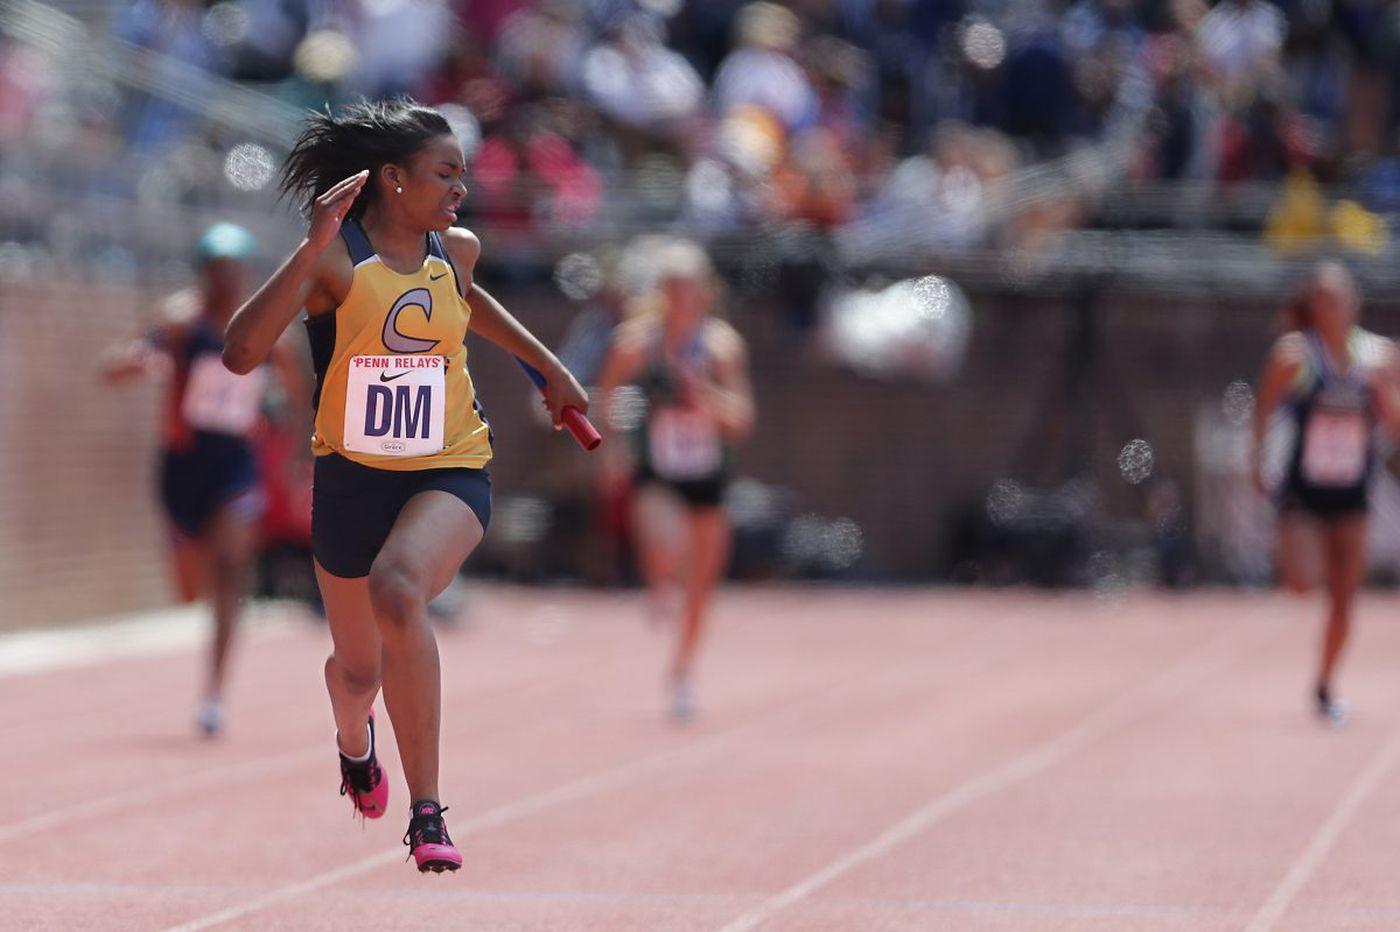 Penn Relays: Results, live updates from Thursday's races